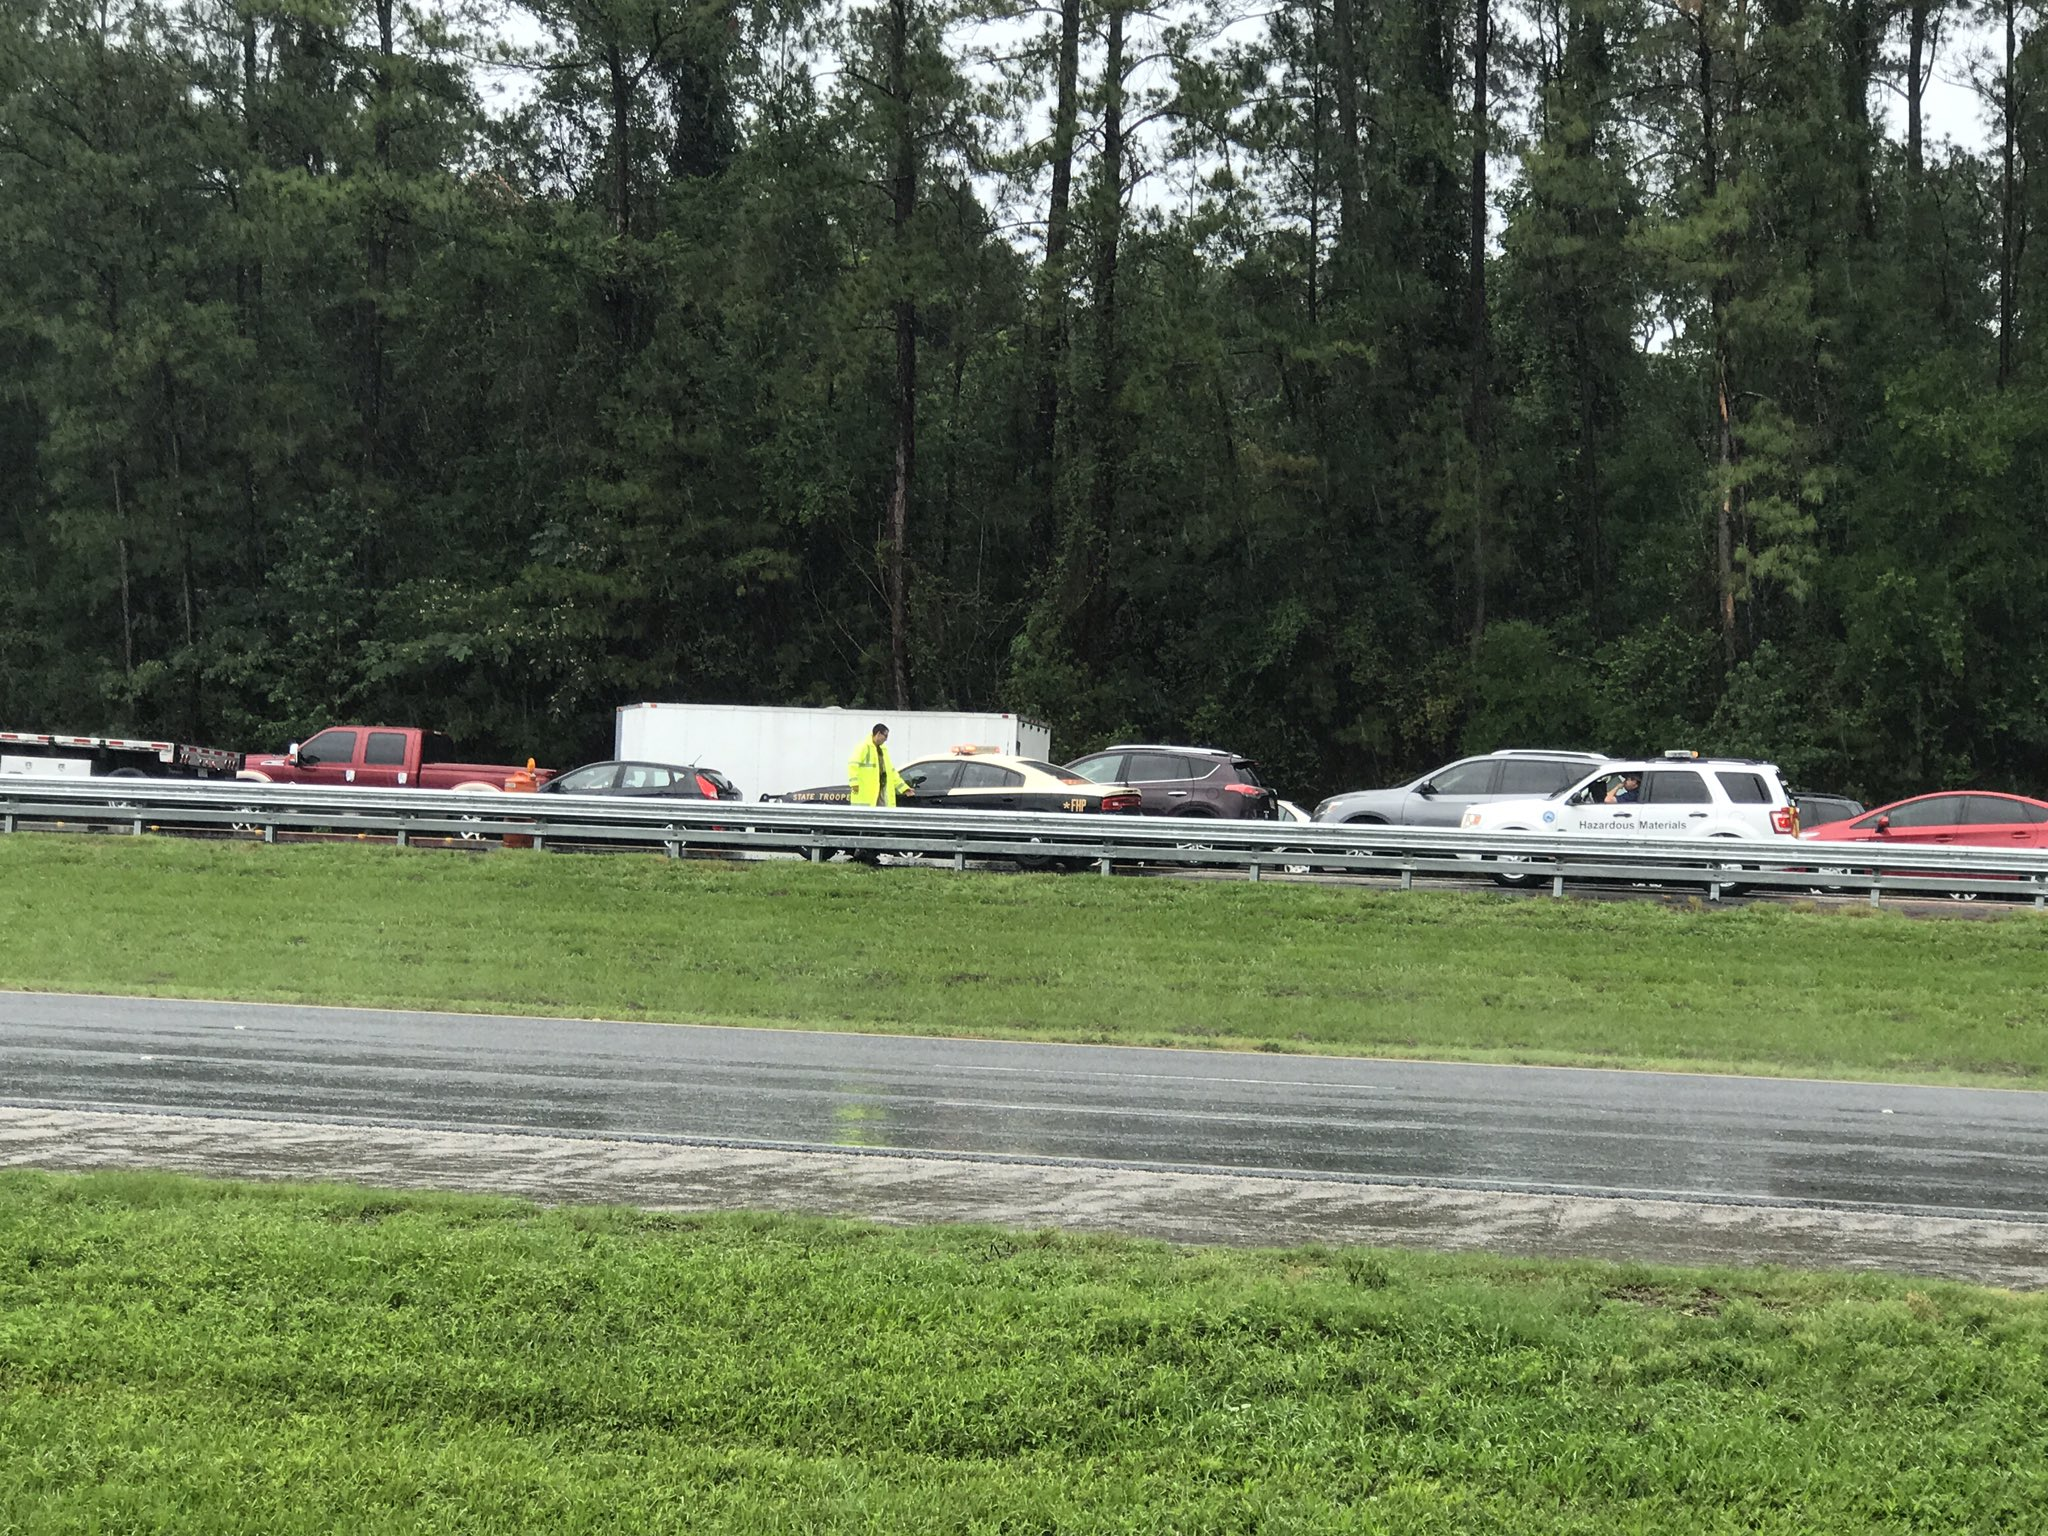 The northbound lanes of I-75 are blocked after a wreck and fuel leak involving a truck near mile marker 390. (Andy Paras/CBS 4 News)